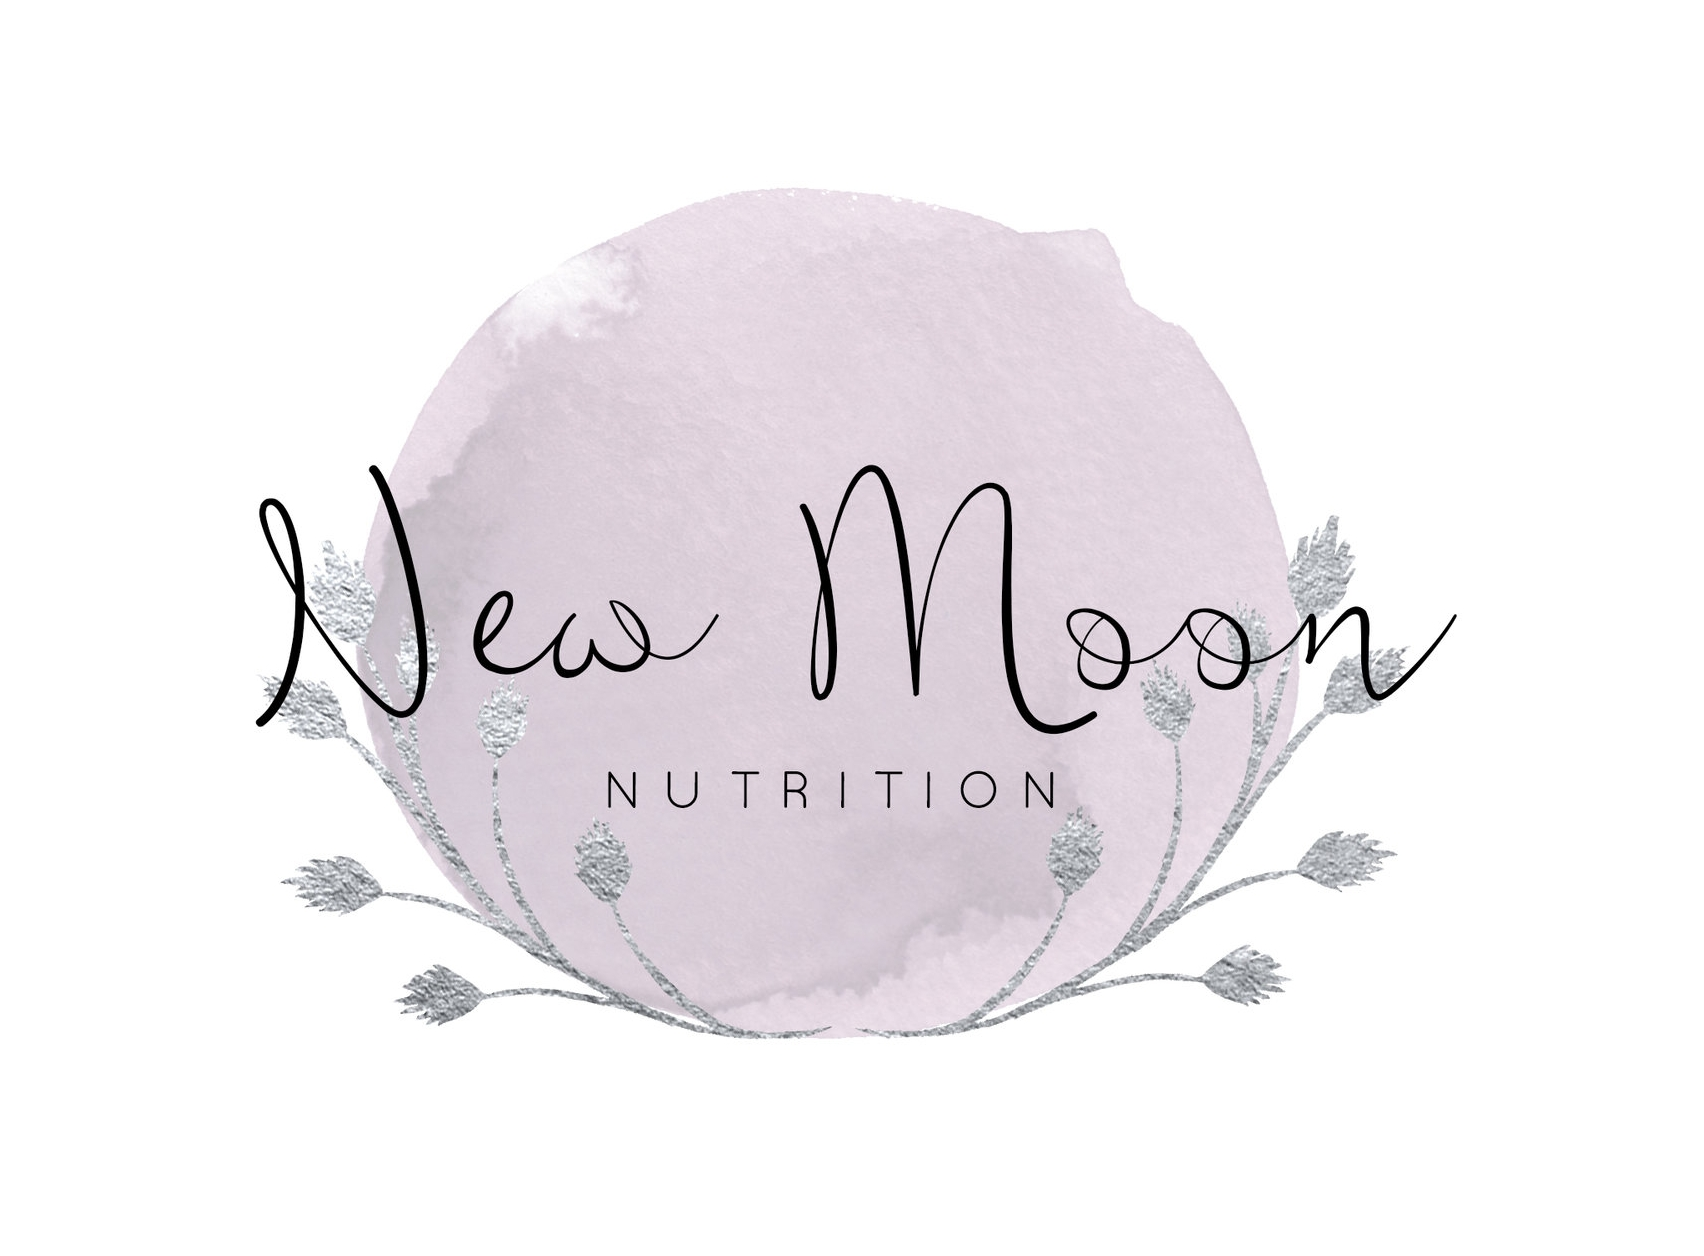 new moon logo 1.jpg